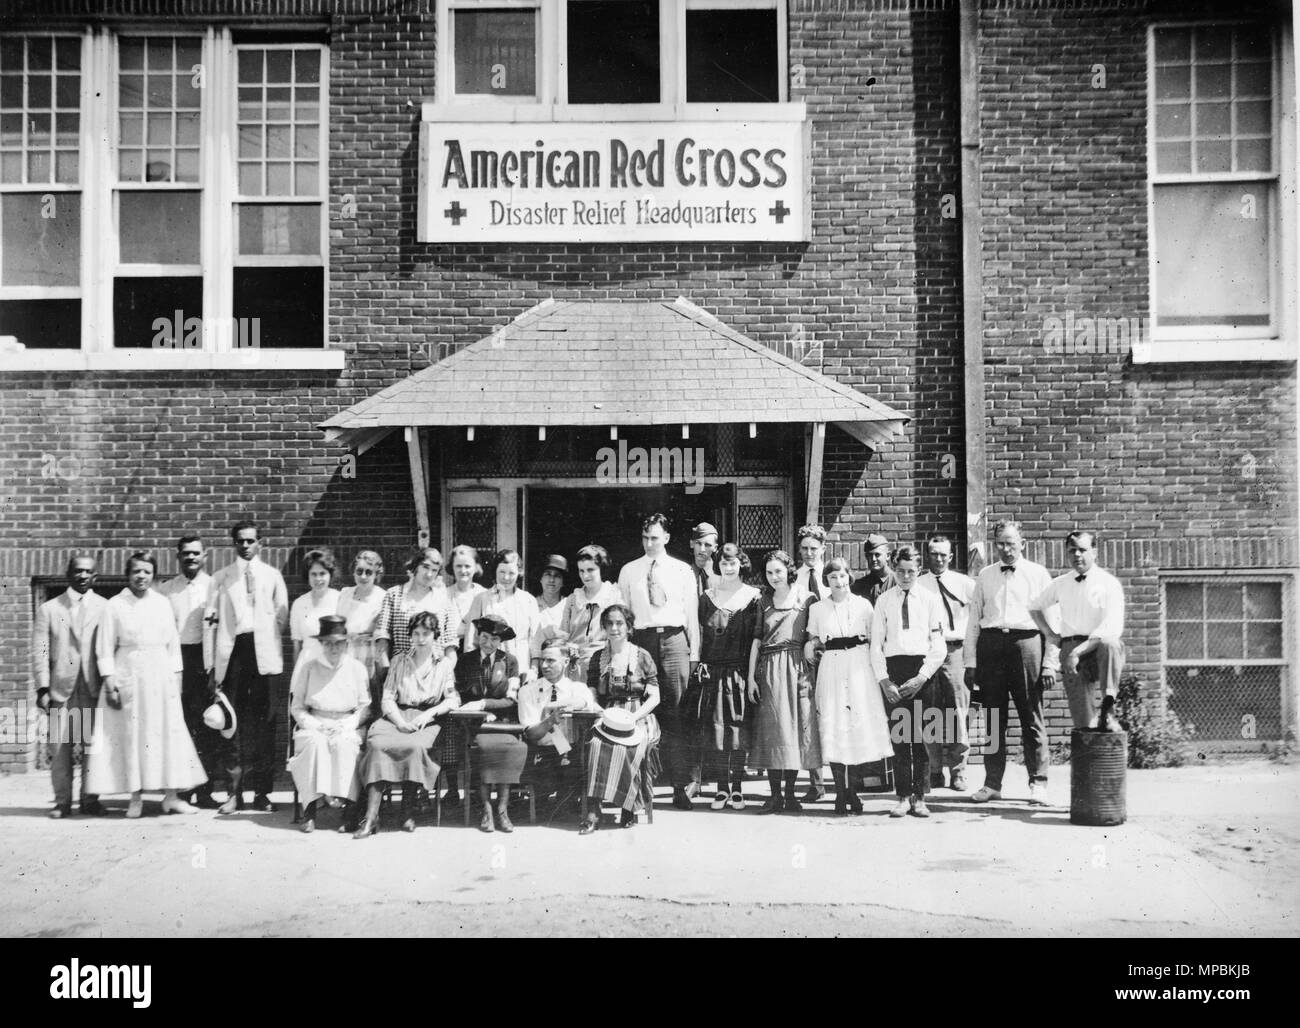 Headquarters staff, American Red Cross Disaster Relief Headquarters, Tulsa, Oklahoma after the race riot of June 1921 Stock Photo